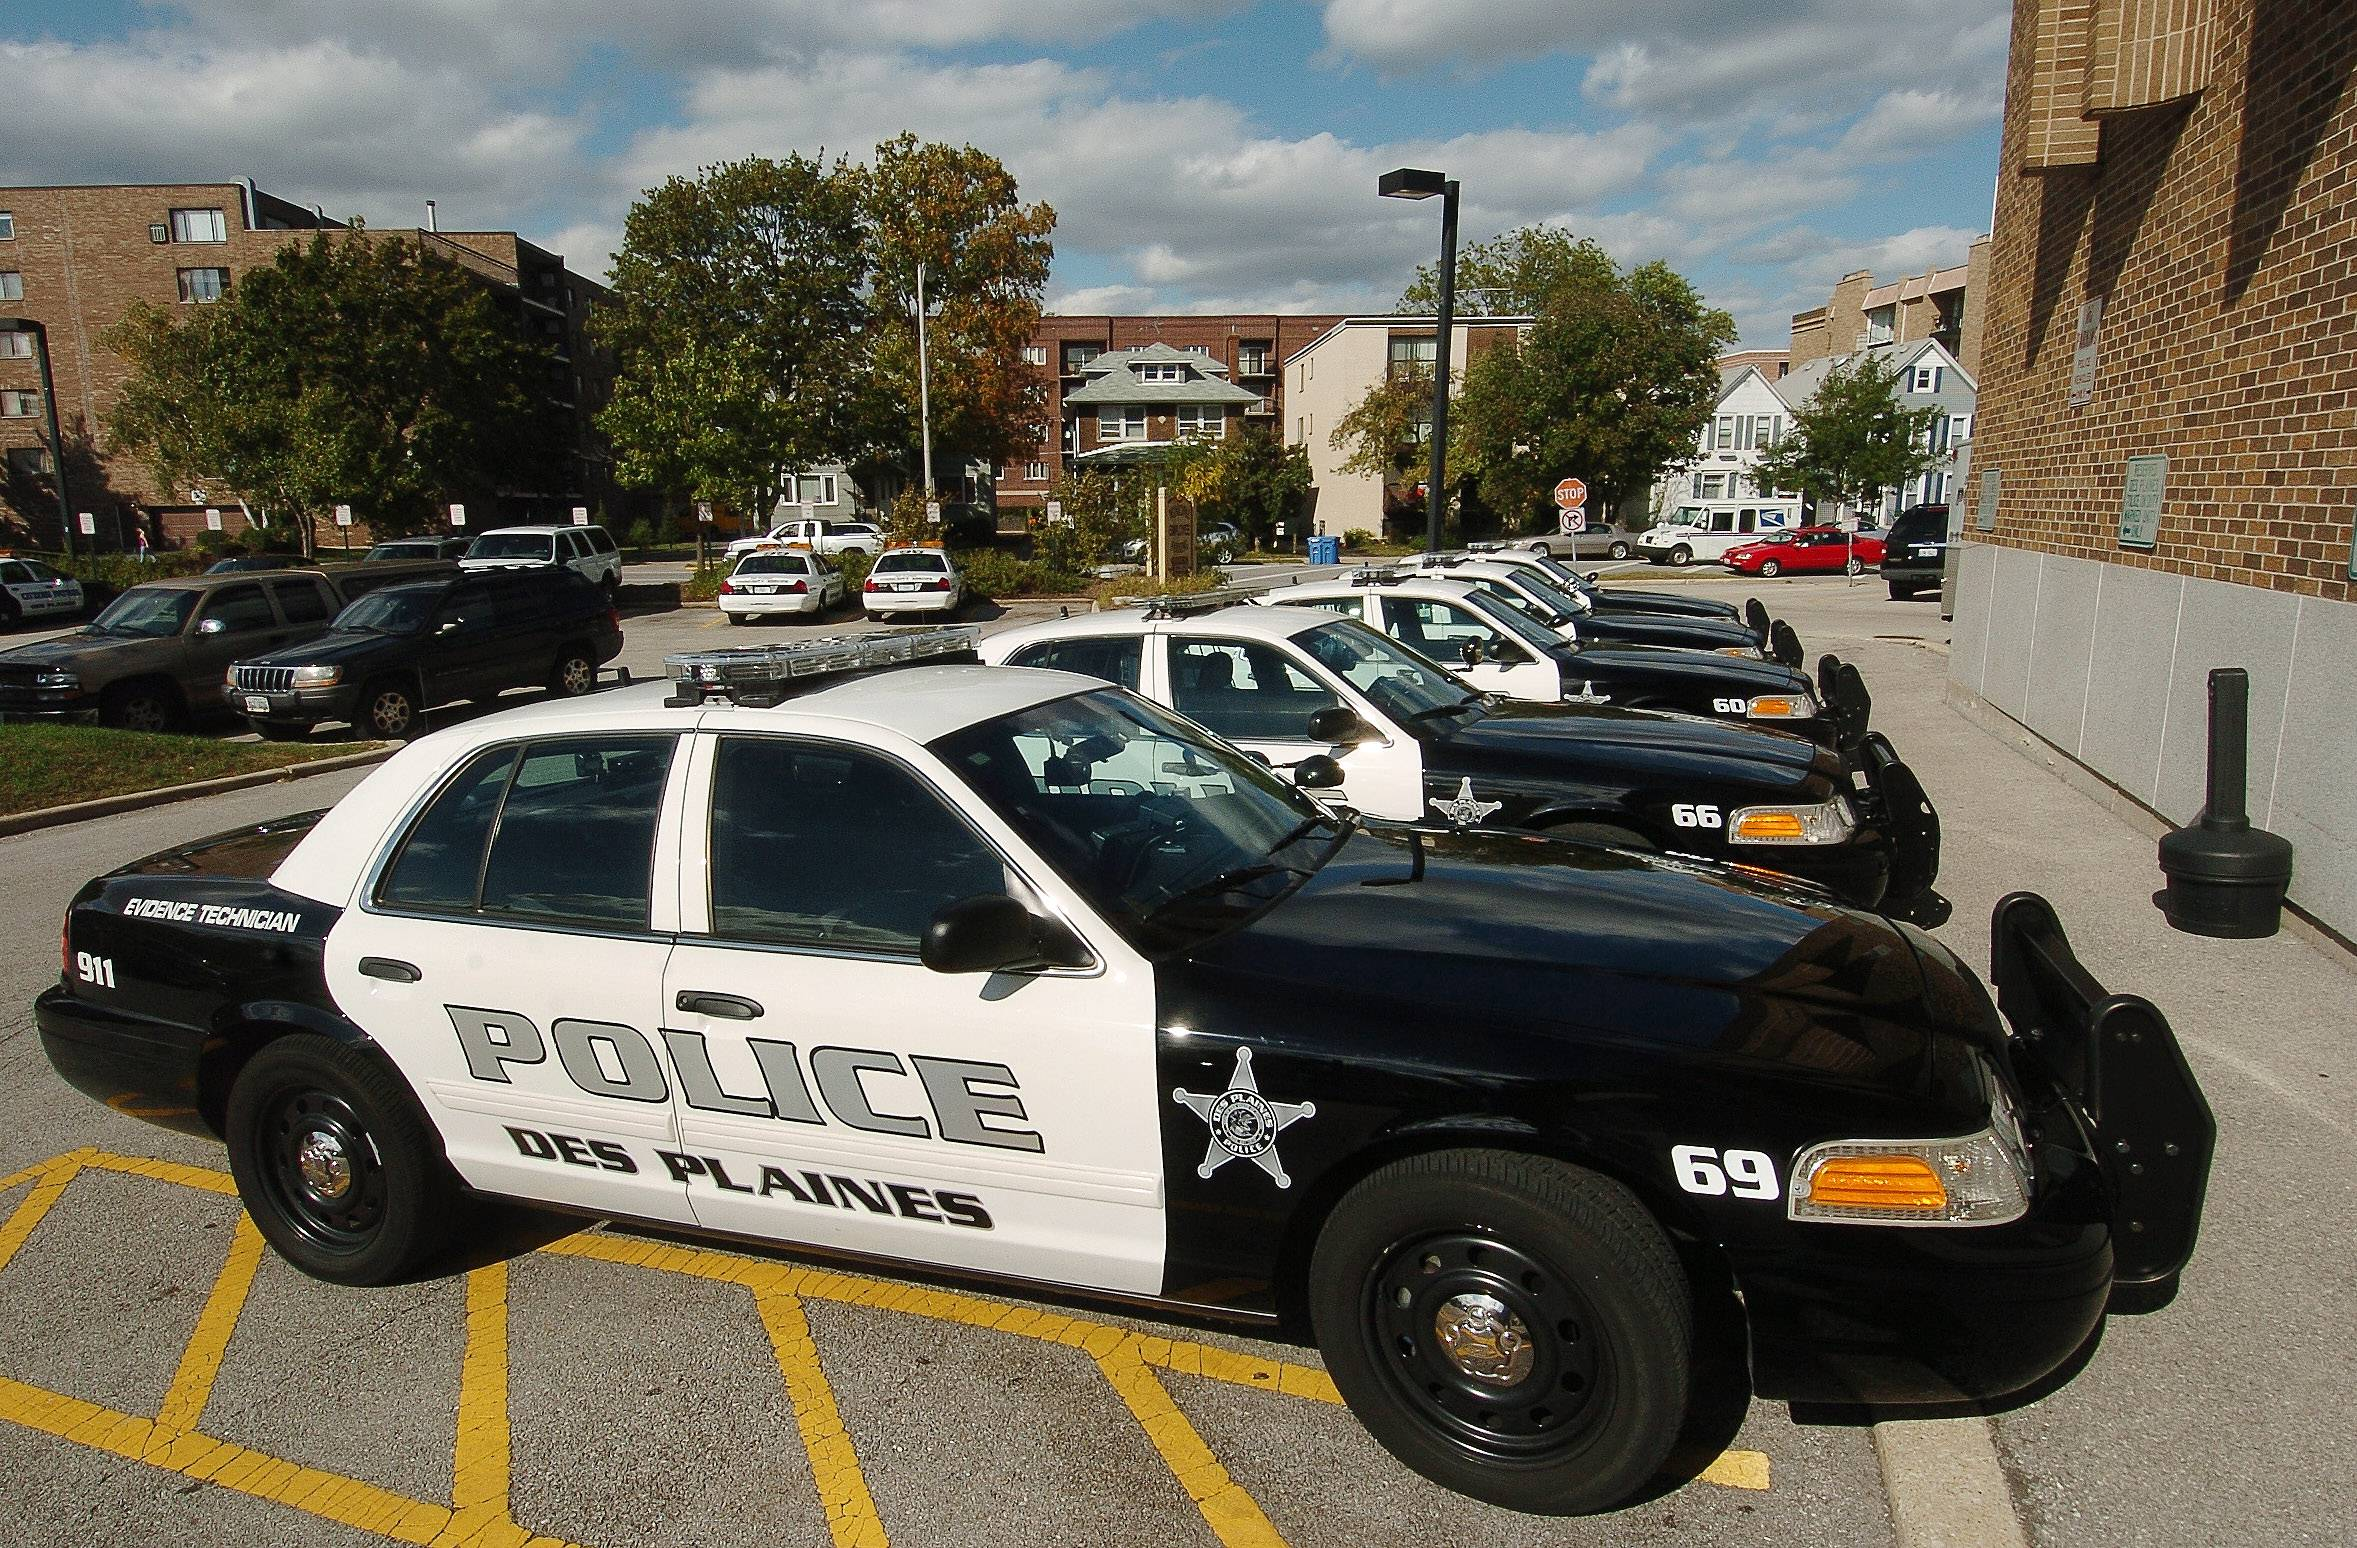 Smaller raises in Des Plaines police's 5-year contract